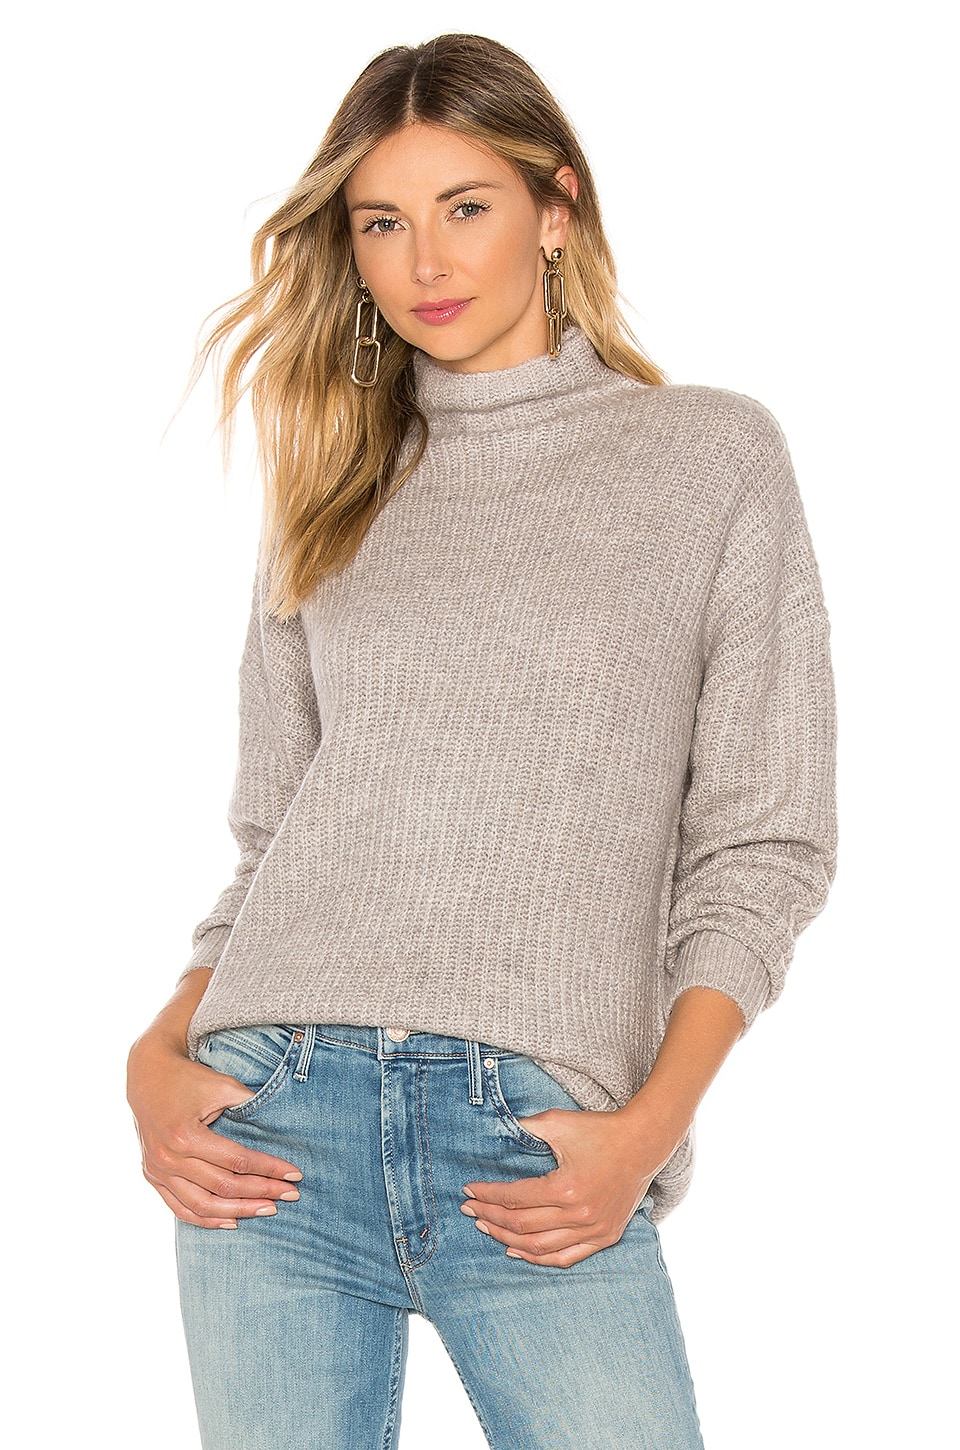 AMUSE SOCIETY Lets Snuggle Sweater in Snow Heather Grey